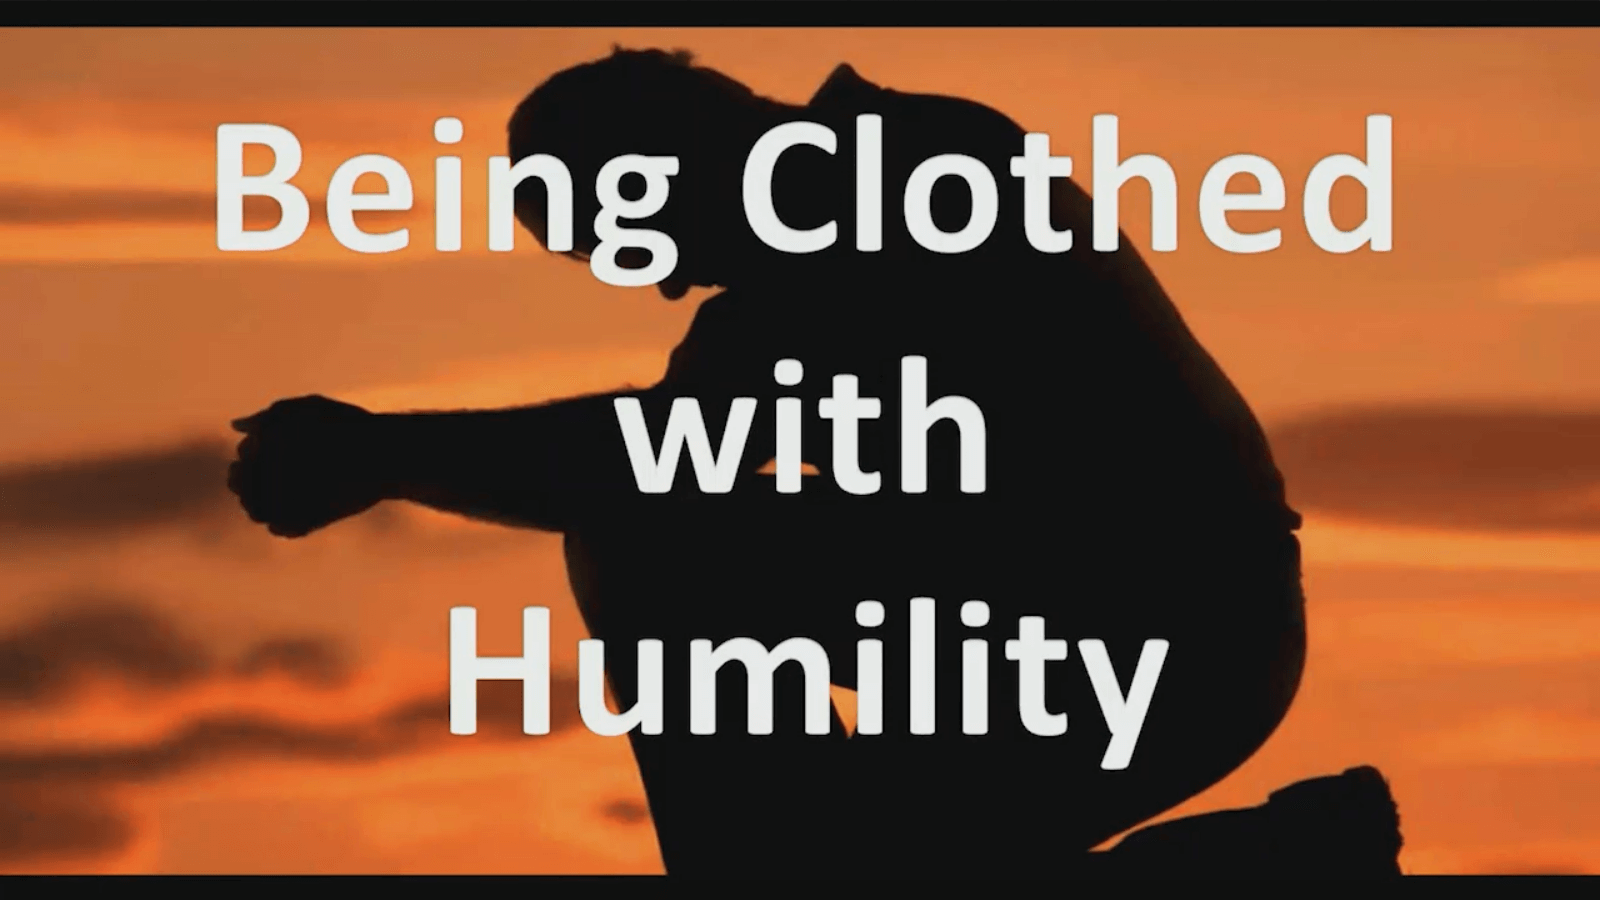 Being Clothed with Humility